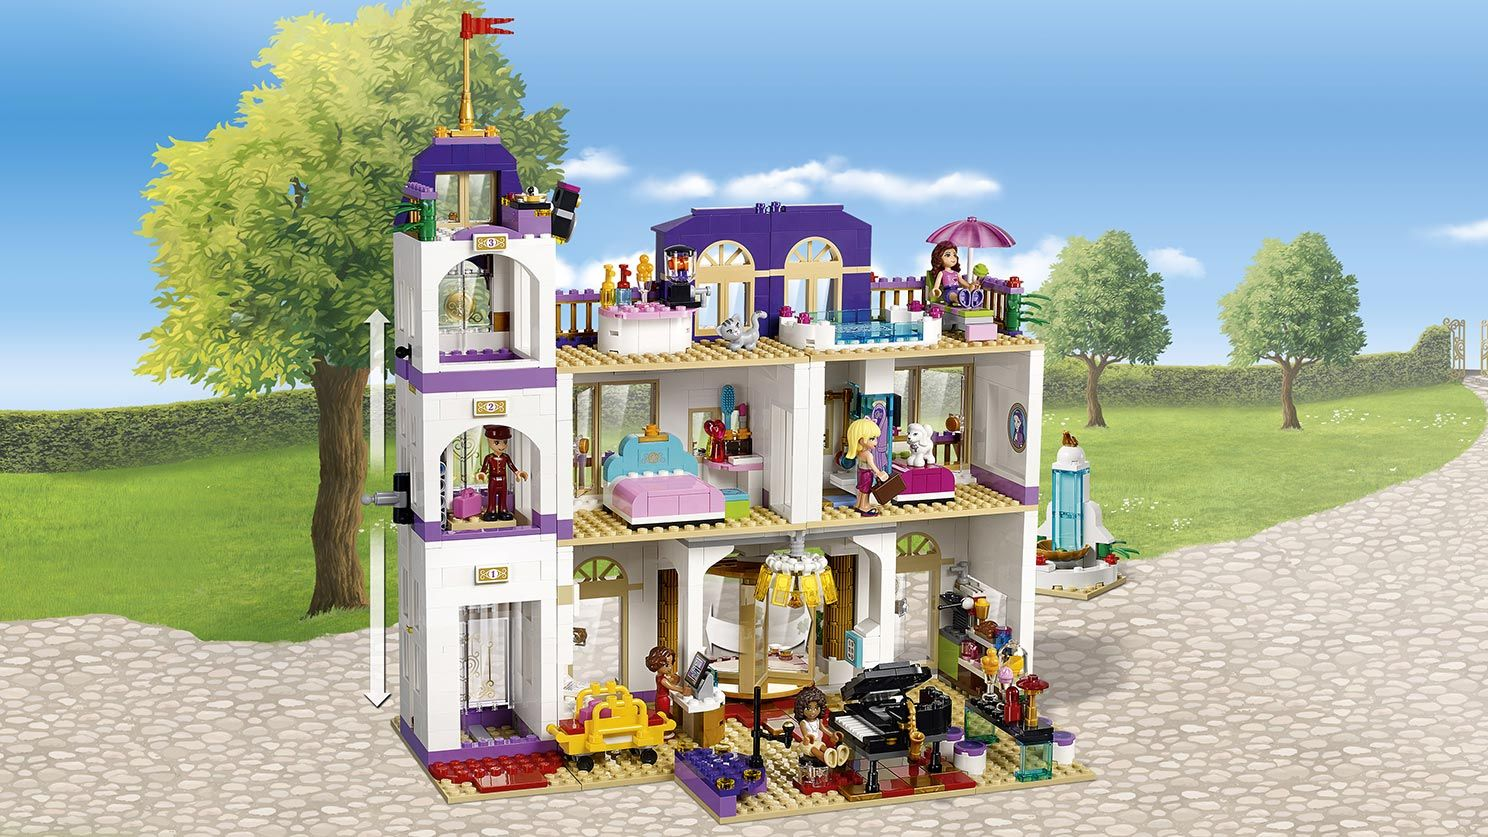 41101 Heartlake Grand Hotel Products Lego Friends Lego Com Friends Lego Com Lego Friends Grand Hotel Legos